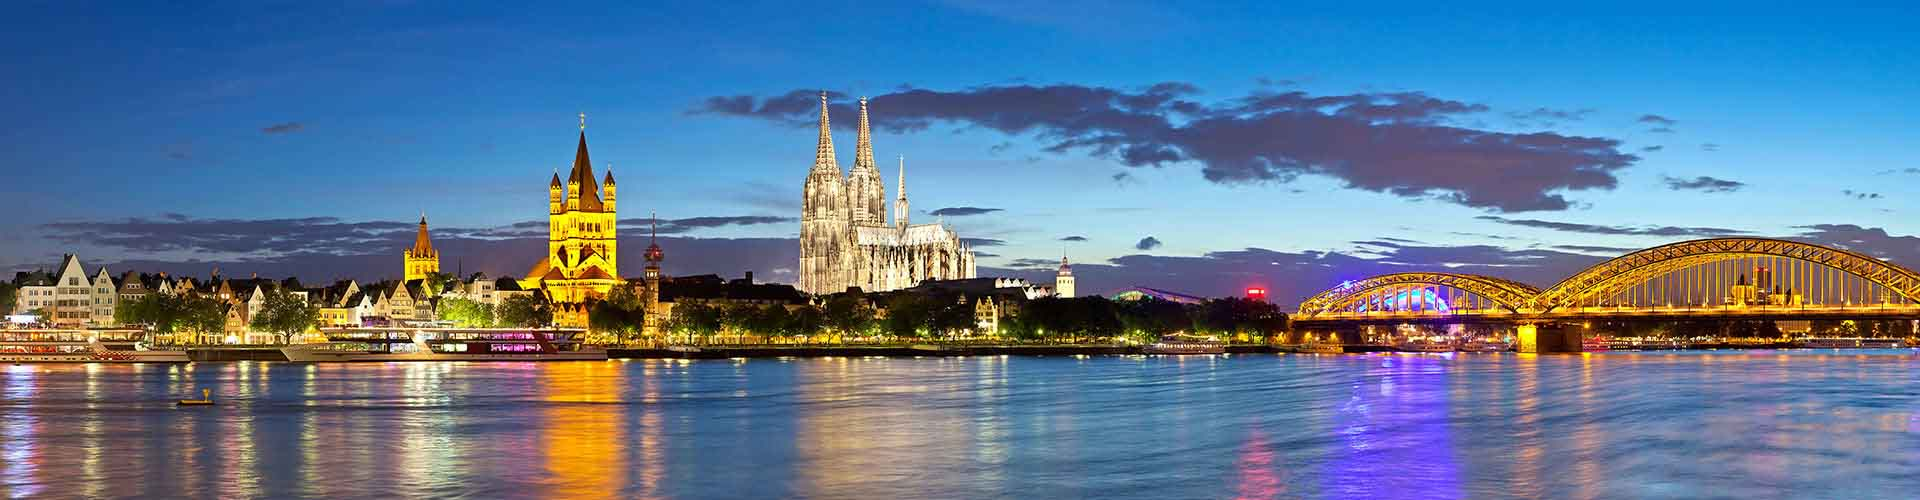 Cologne – Hotels in Rath/Heumar. Maps of Cologne, Photos and Reviews for each Hotel in Cologne.